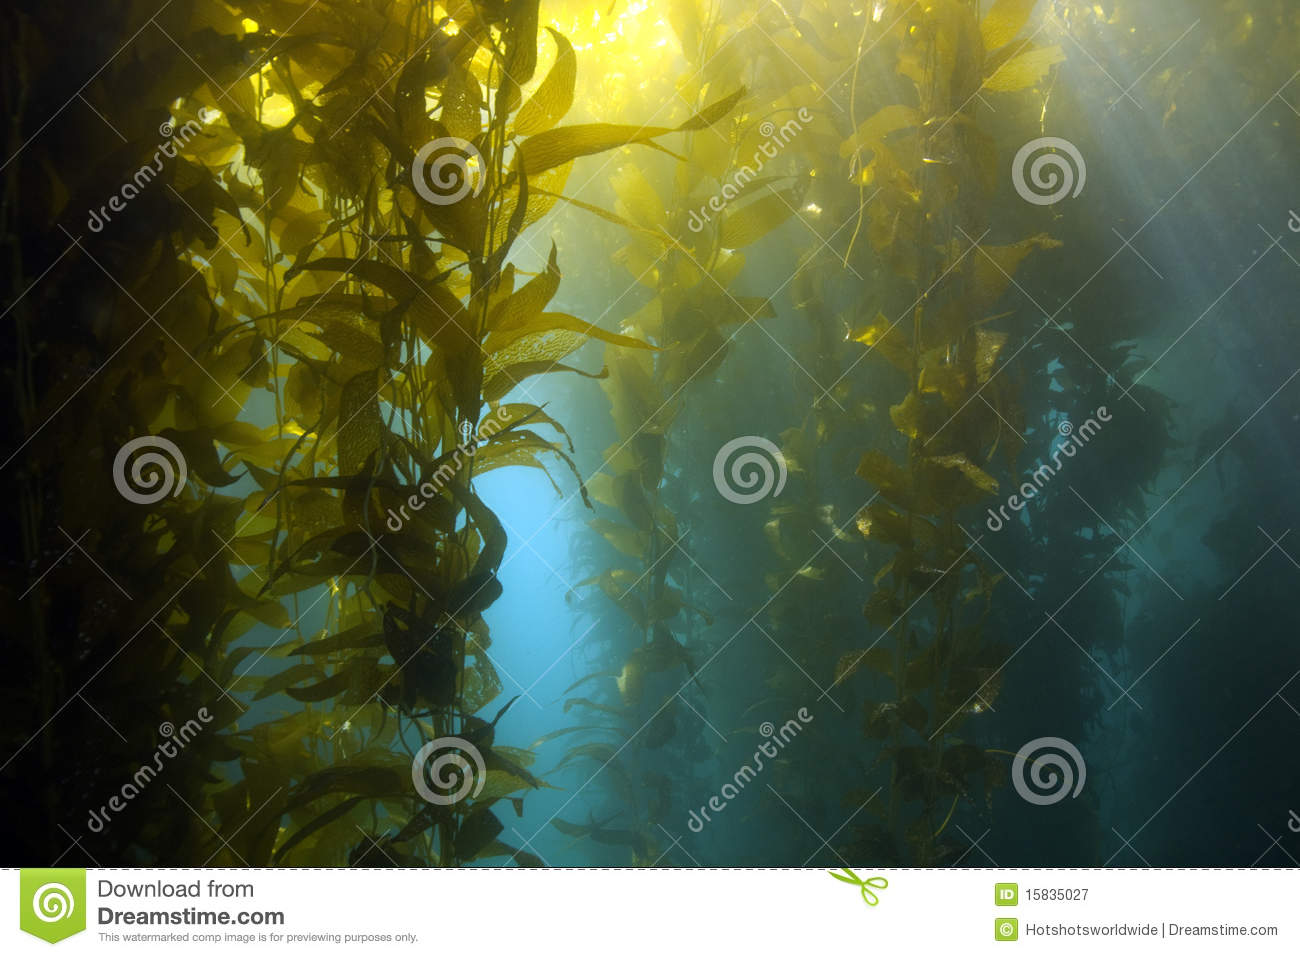 Underwater kelp forest, catalina island, california